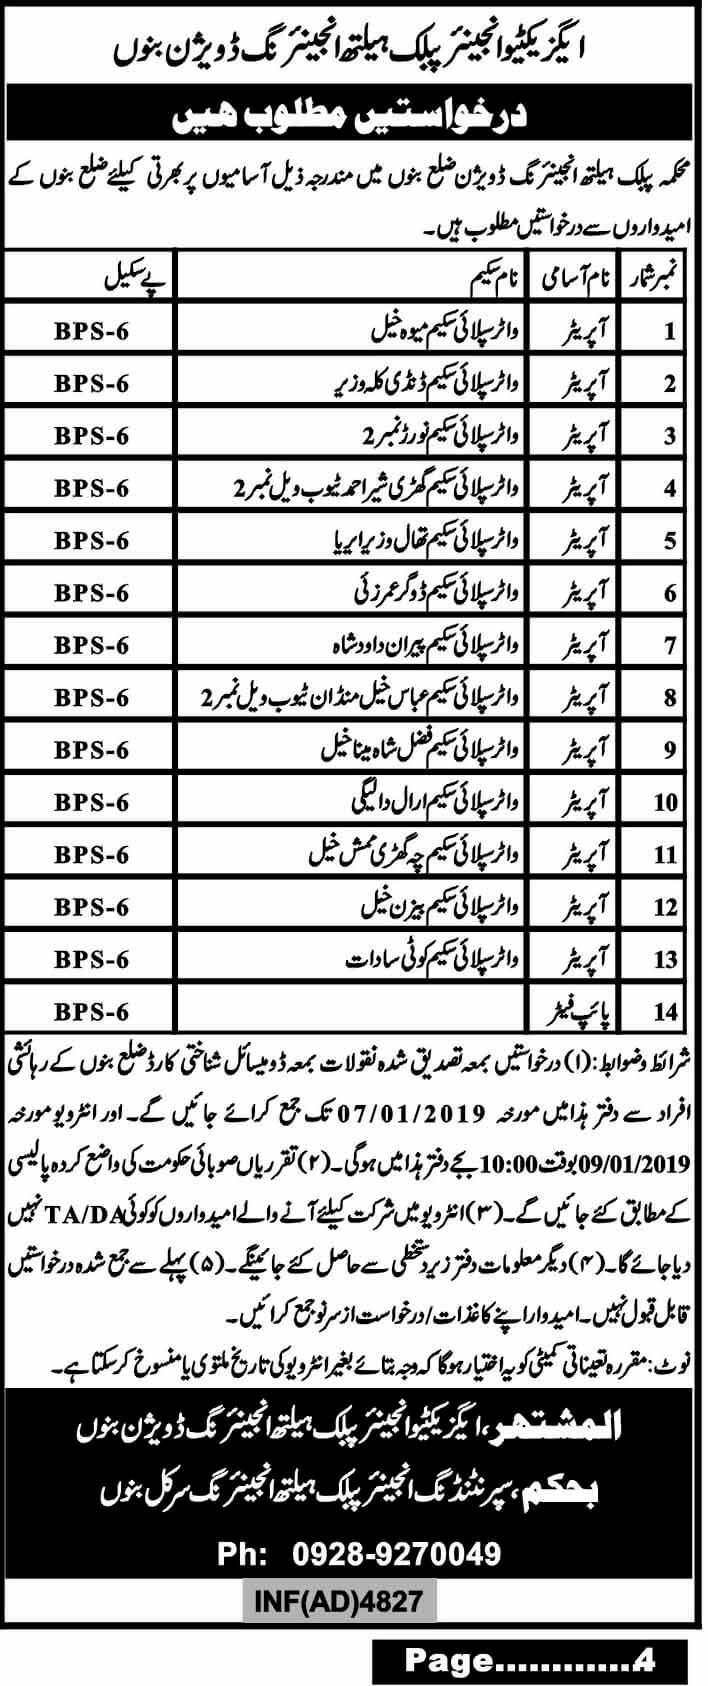 Public Health Engineering Department Jobs 2019 Kpk   in KPK on December, 2018 | Government